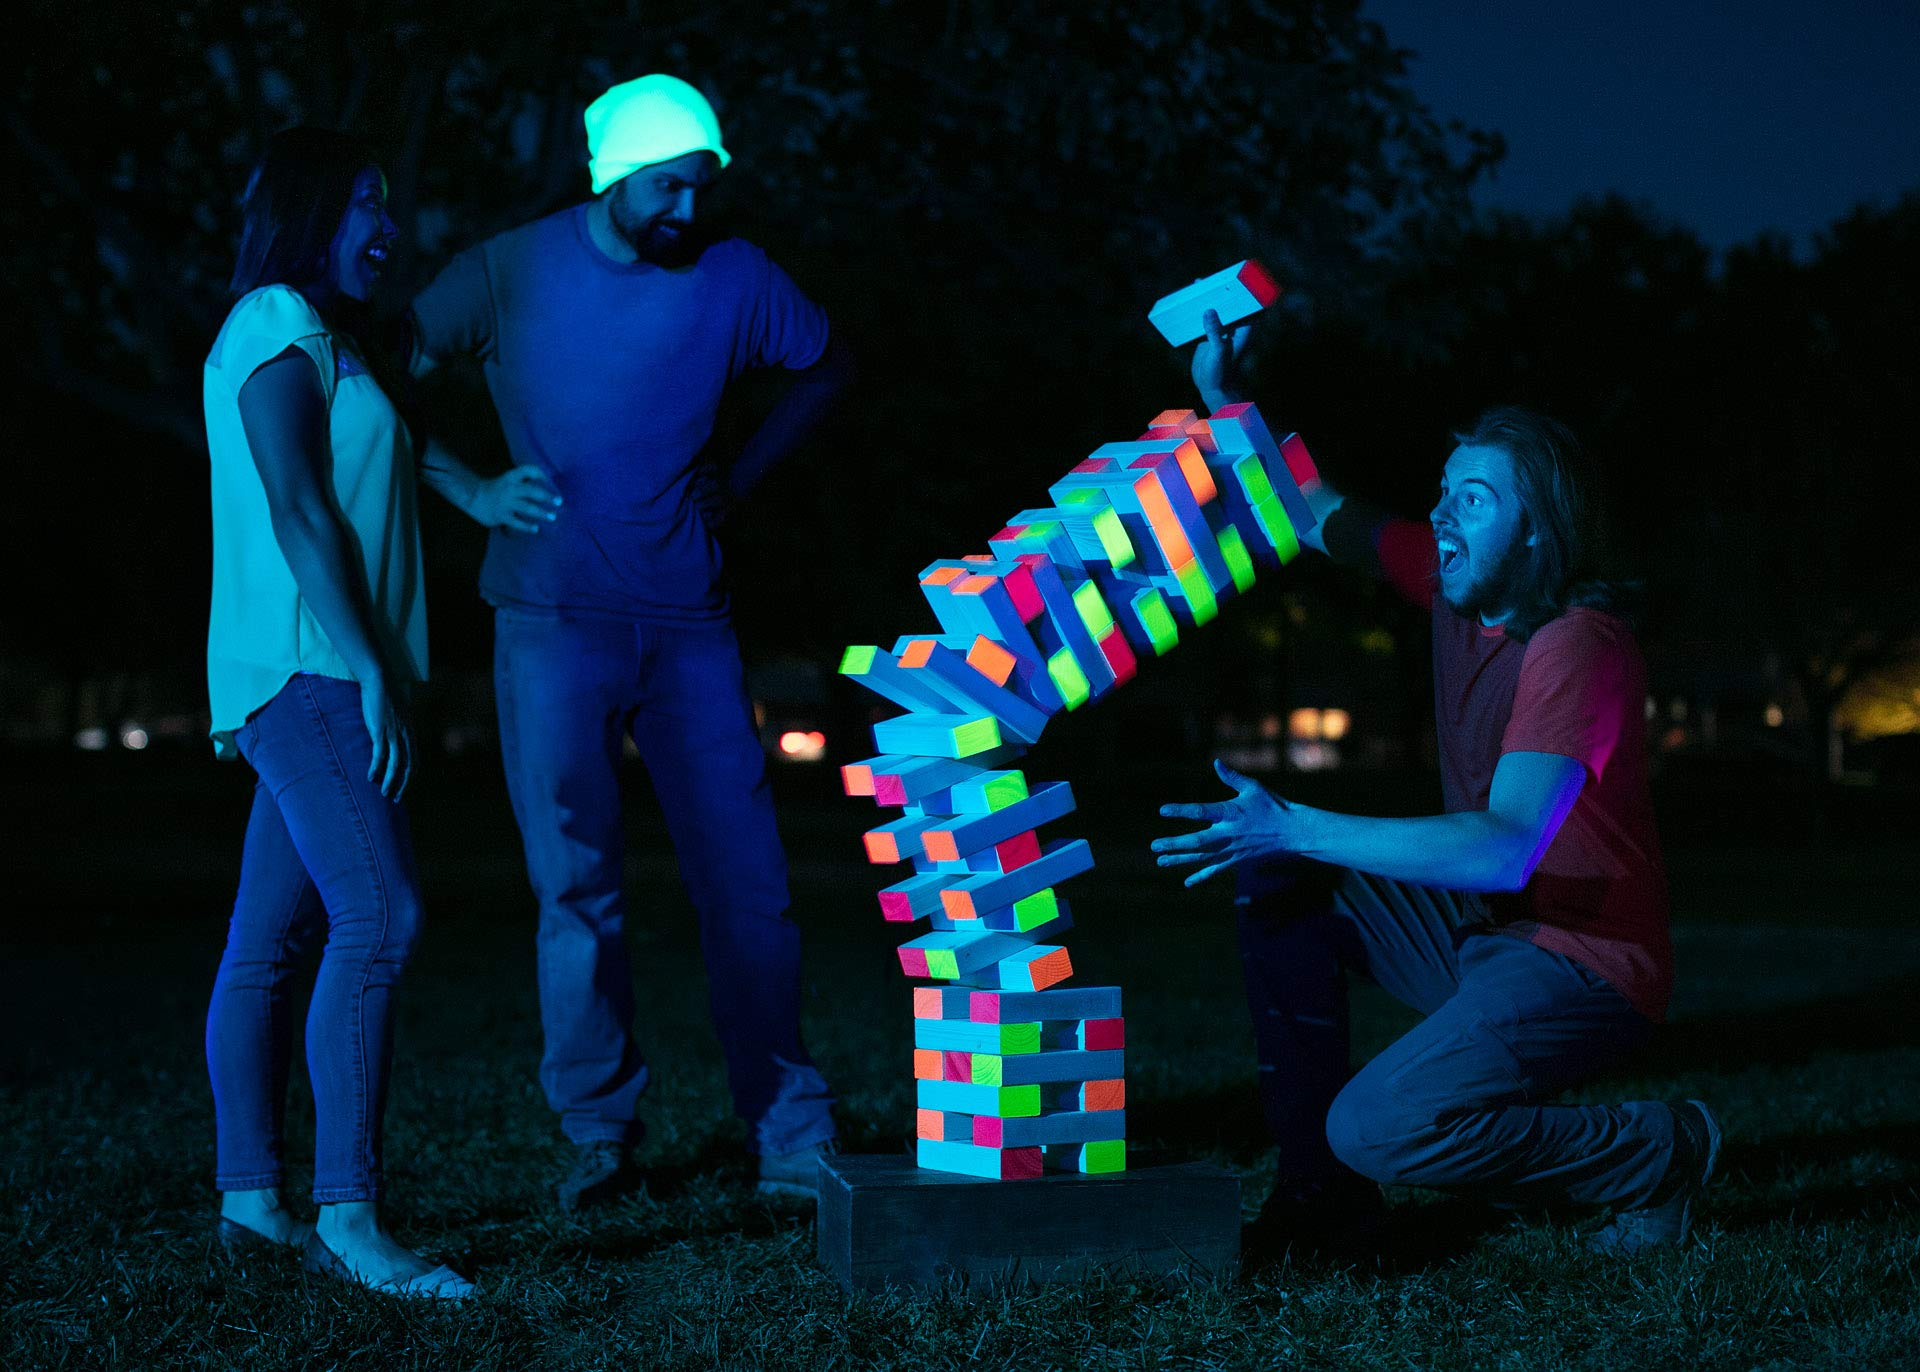 Limelight Games Ultimate Black Light Giant Tumbling Tower - Entertain Your Large Group Day Or Night - Glowing Blocks - Premium Carrying Case - Precision Milled Wooden Stacking Block Set by Limelite Games (Image #1)